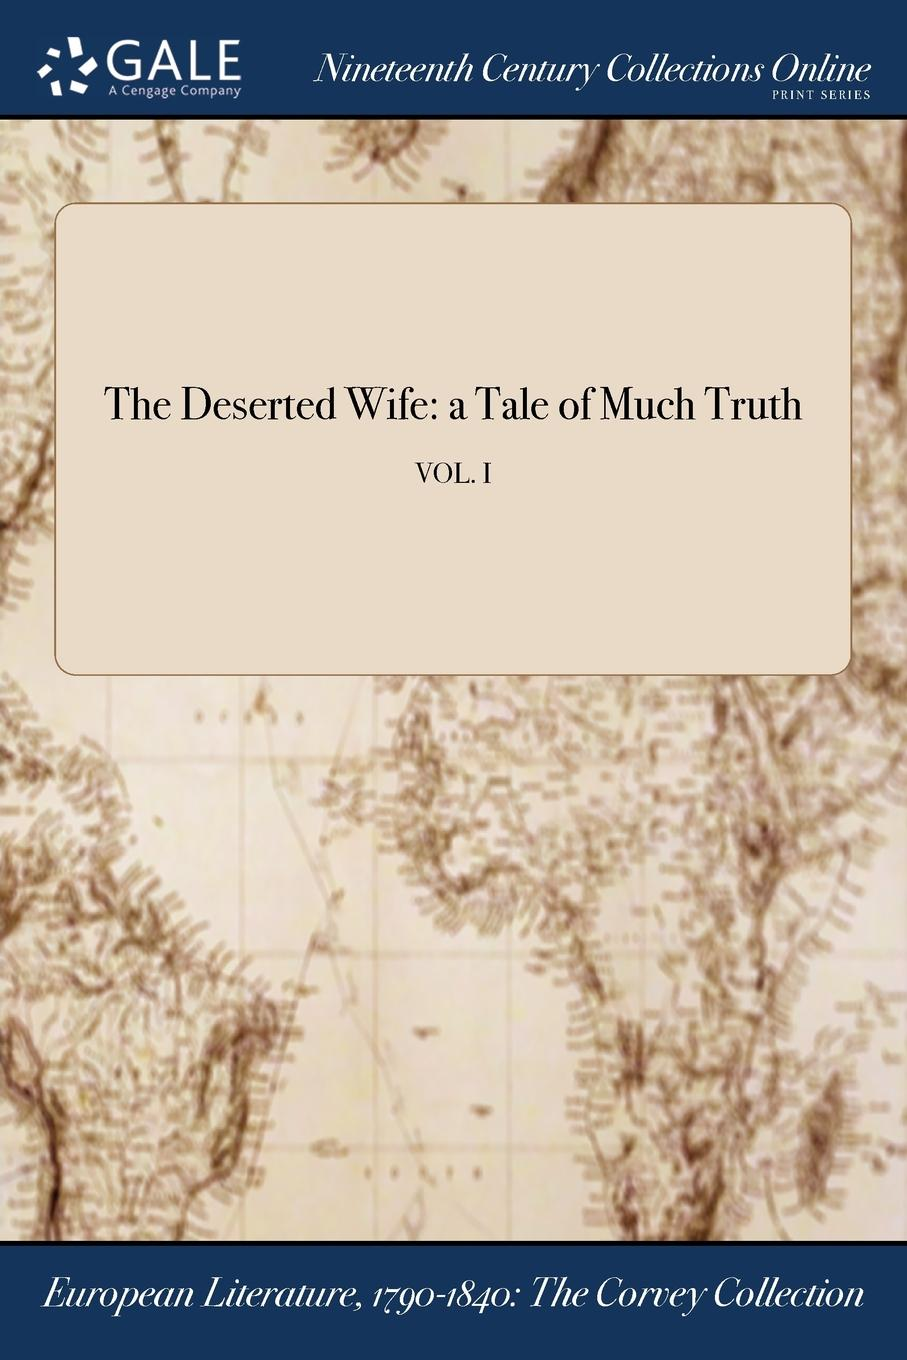 The Deserted Wife. a Tale of Much Truth; VOL. I